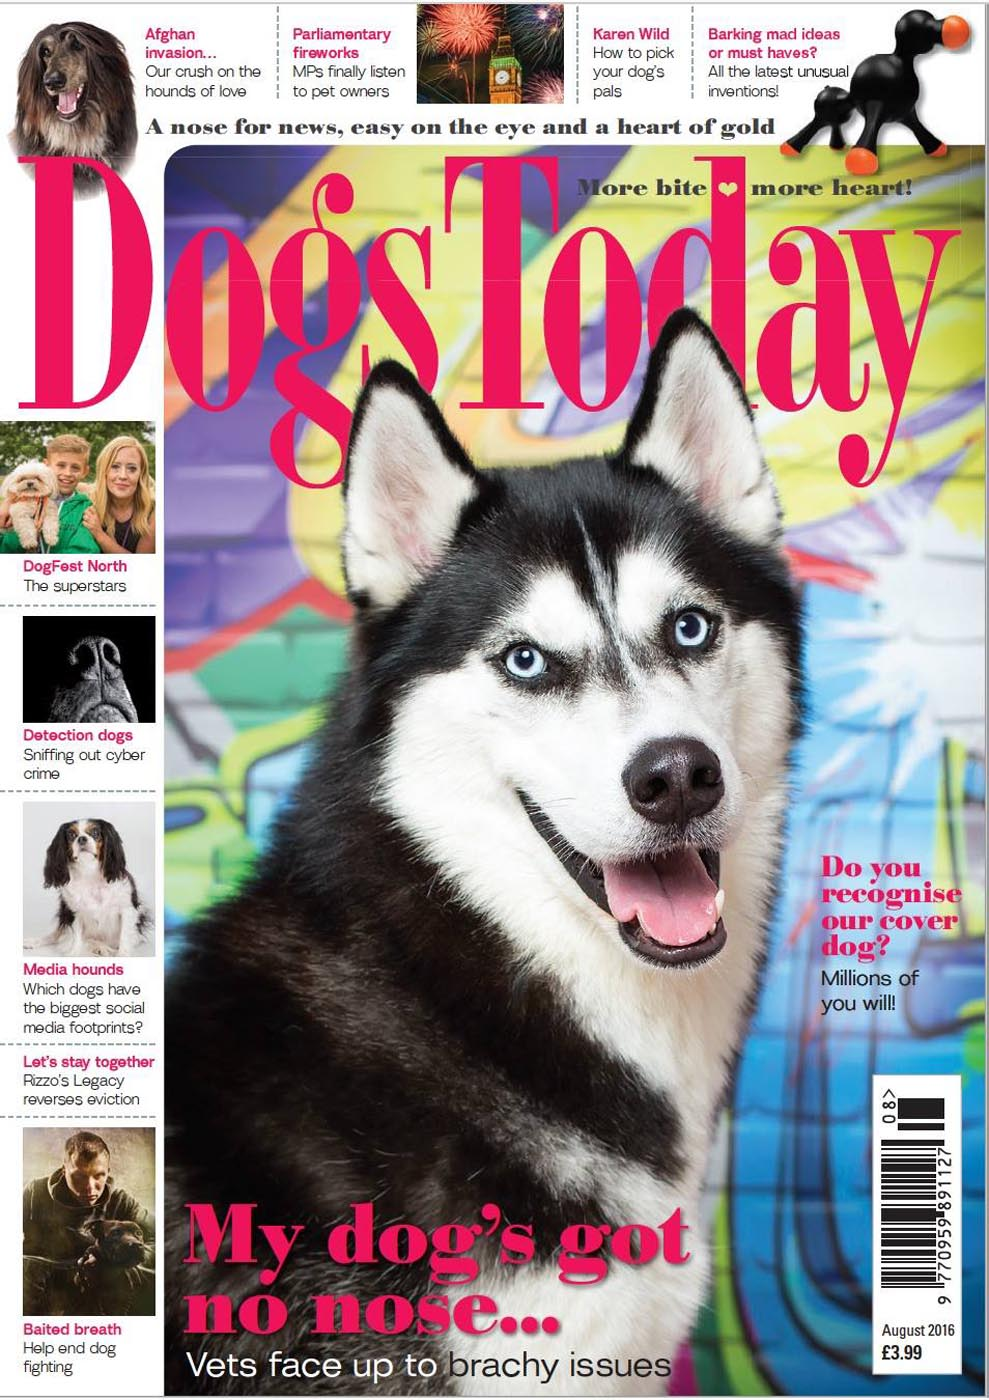 Dogs Today August 2016